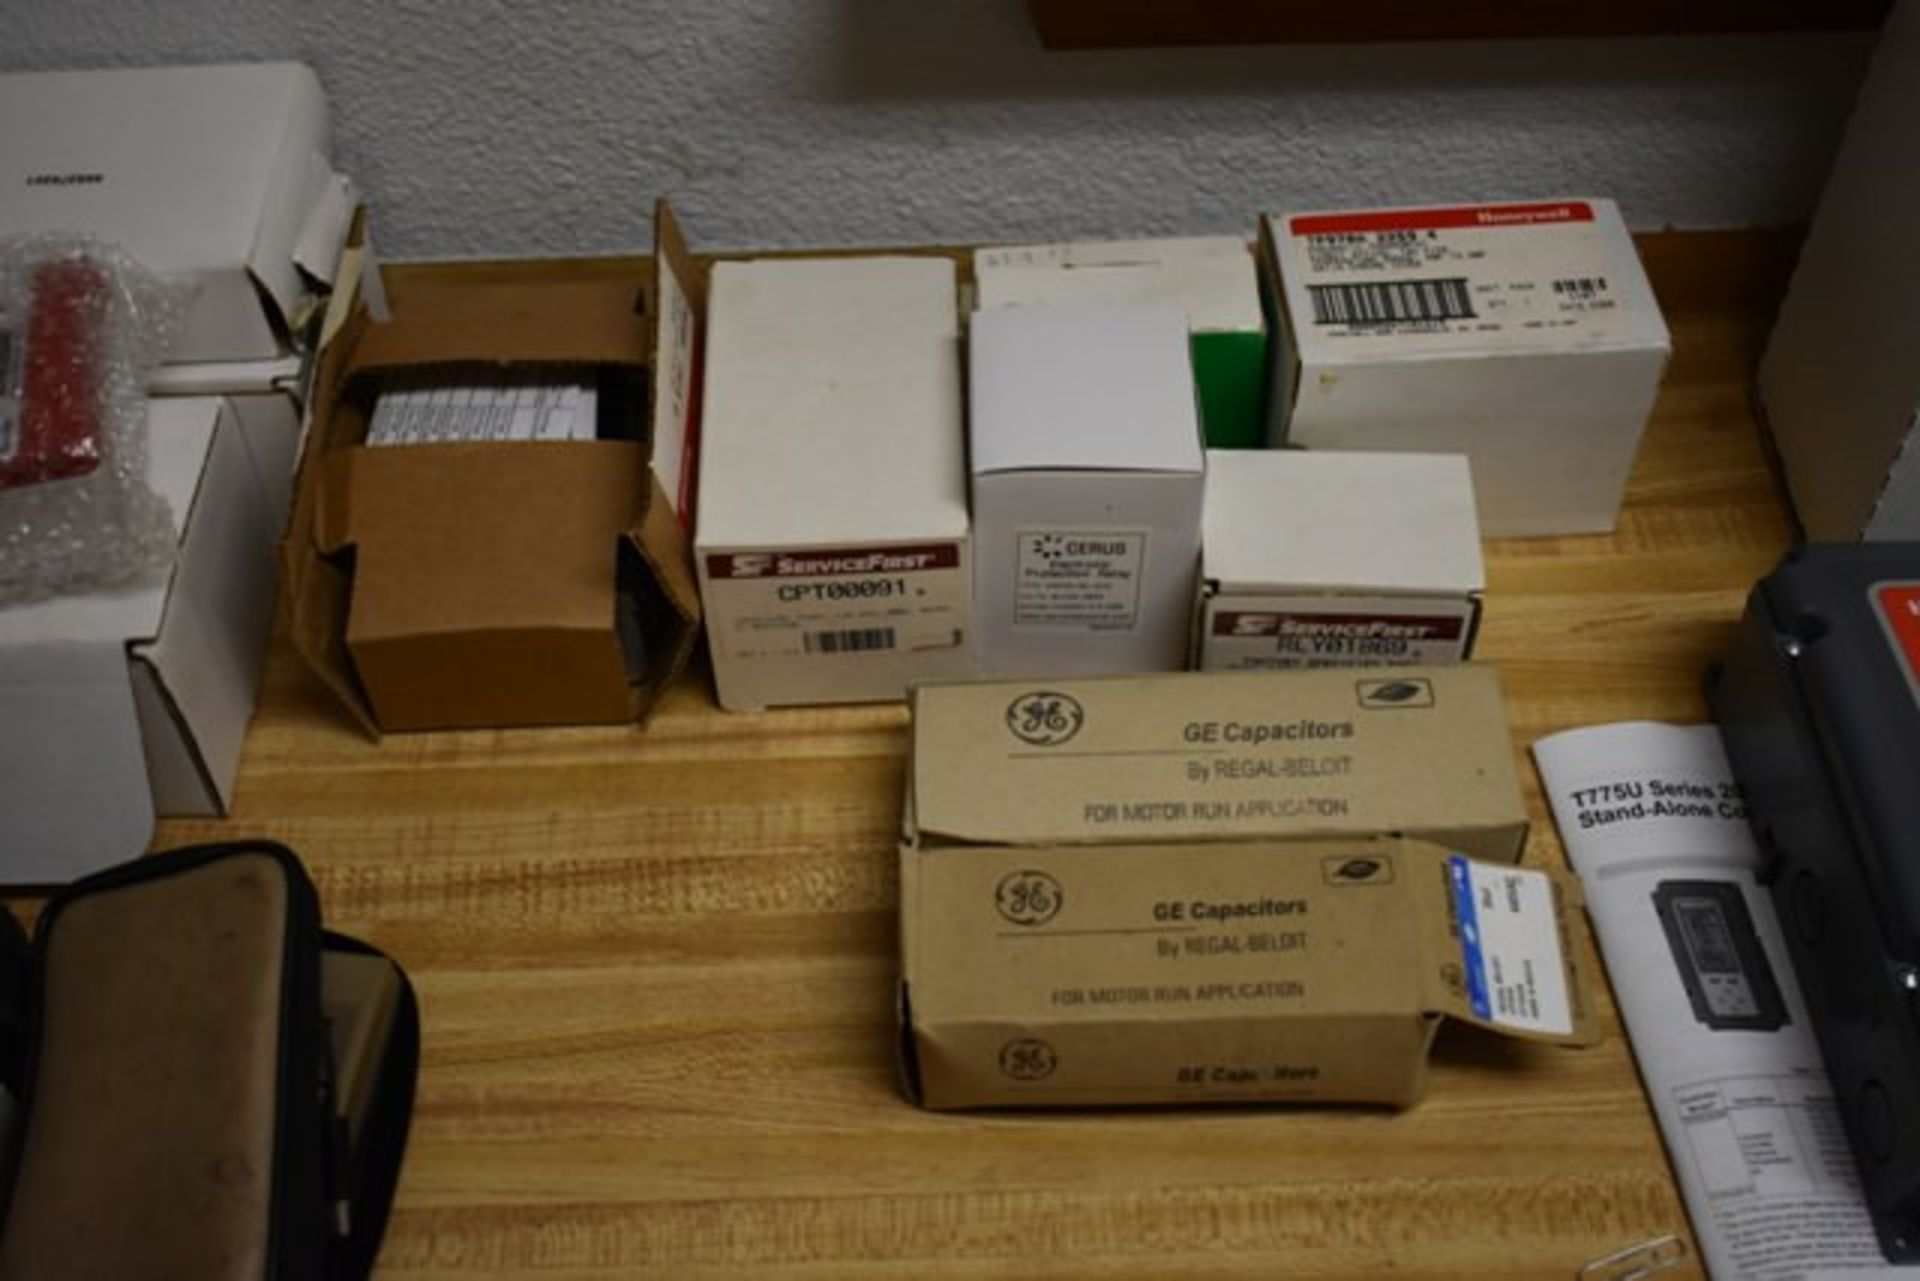 Lot 235 - HONEYWELL CONTROLLER CAPACITORS, PROBE THERMOMETER, LEAK DETECTOR, AMPROBE, MISC AS SHOWN